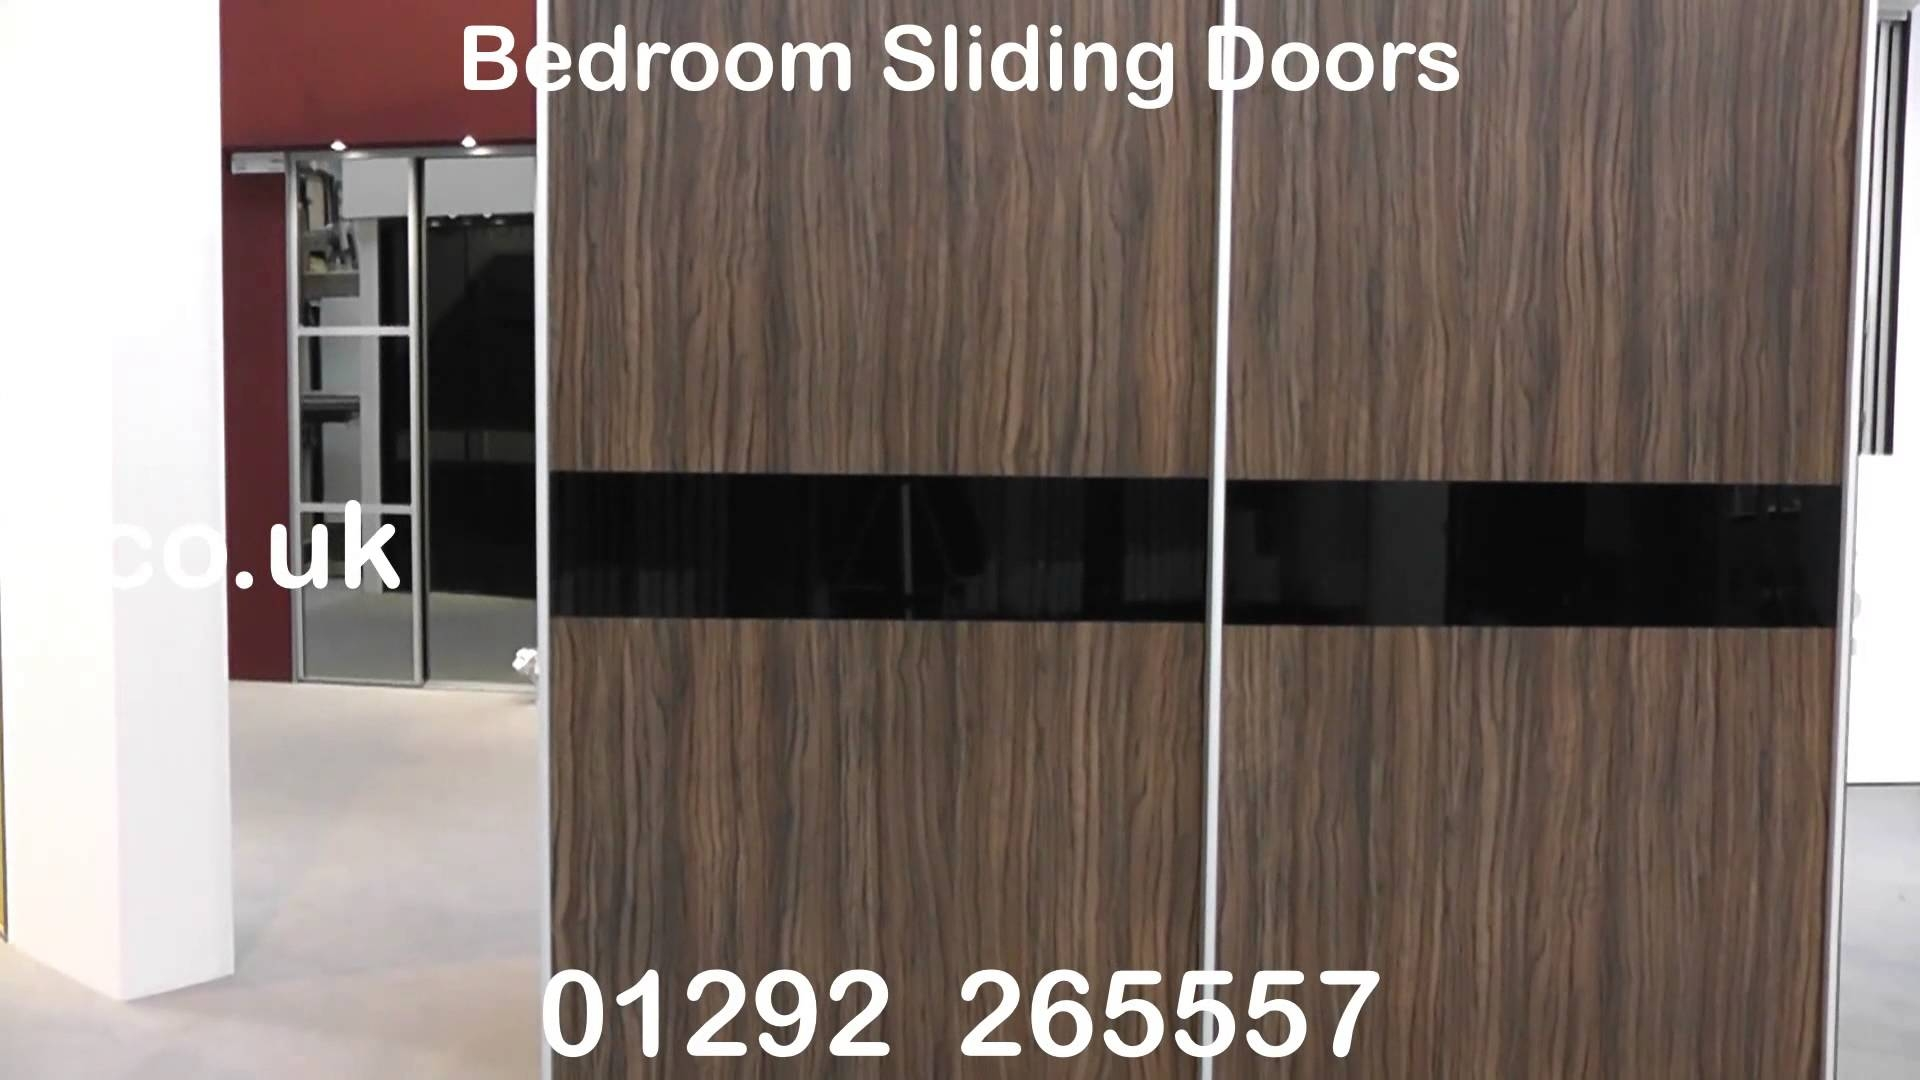 Bedroom Sliding Doors And Sliding Bedroom Doors And Slide Doors In Cupboard Sliding Doors (View 19 of 25)